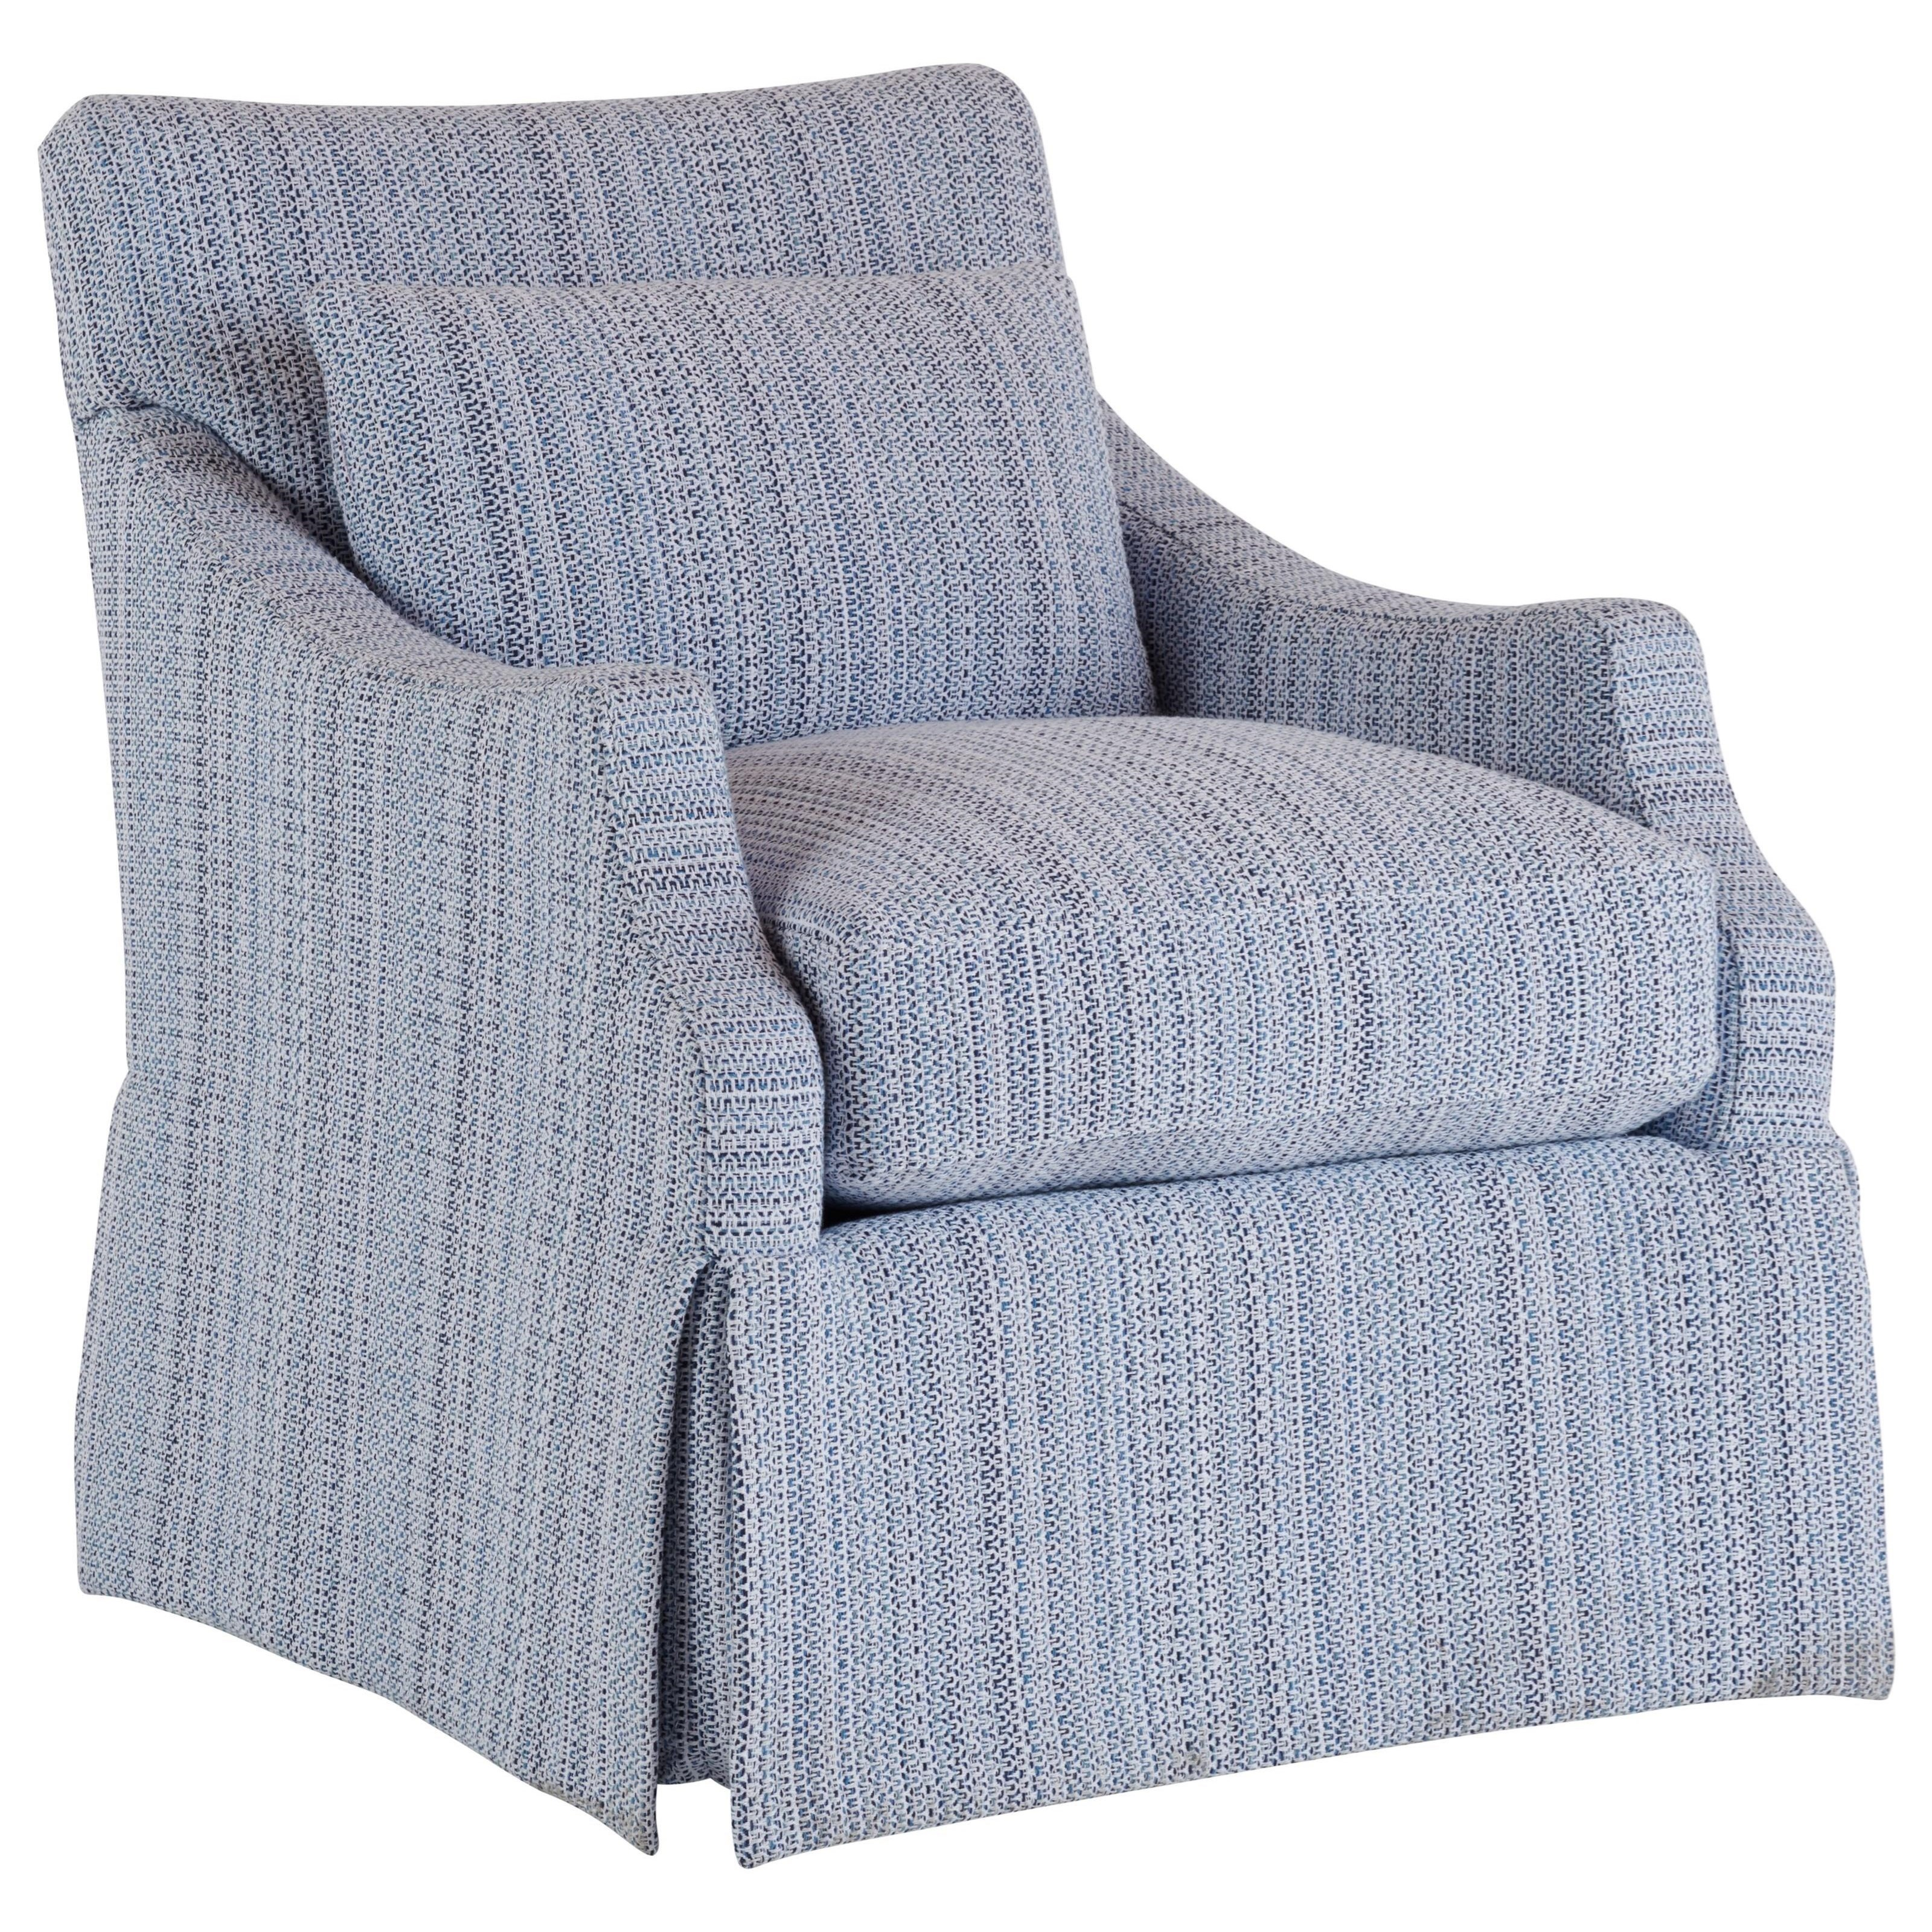 Accents Margaux Accent Chair by Universal at Baer's Furniture